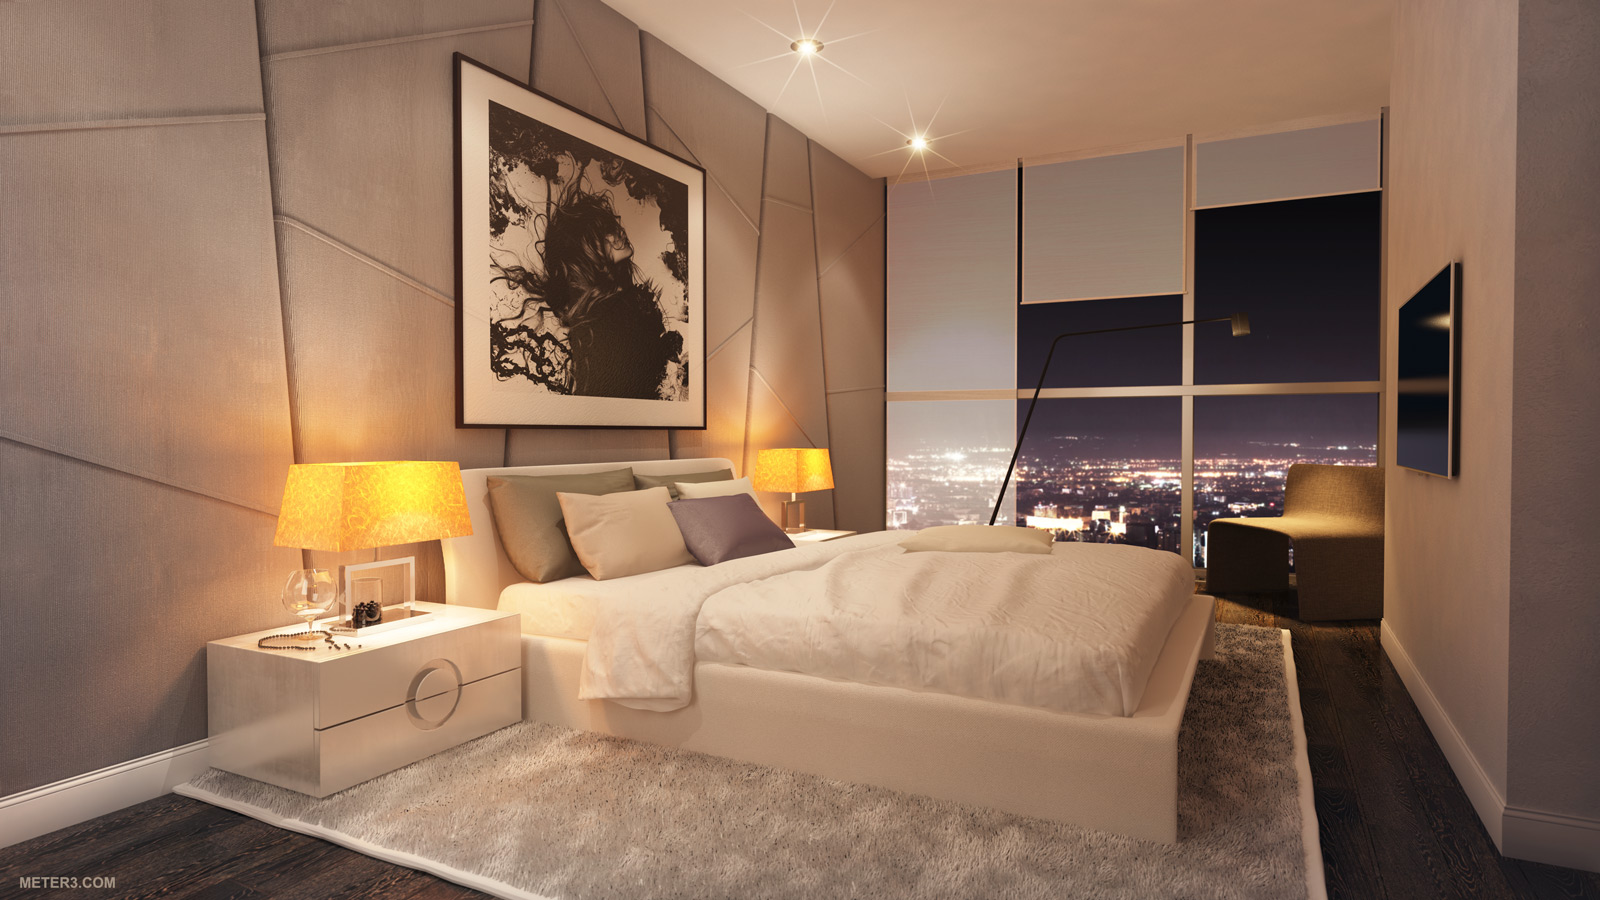 Turkey Penthouse Bedroom Nightinterior Design Ideas